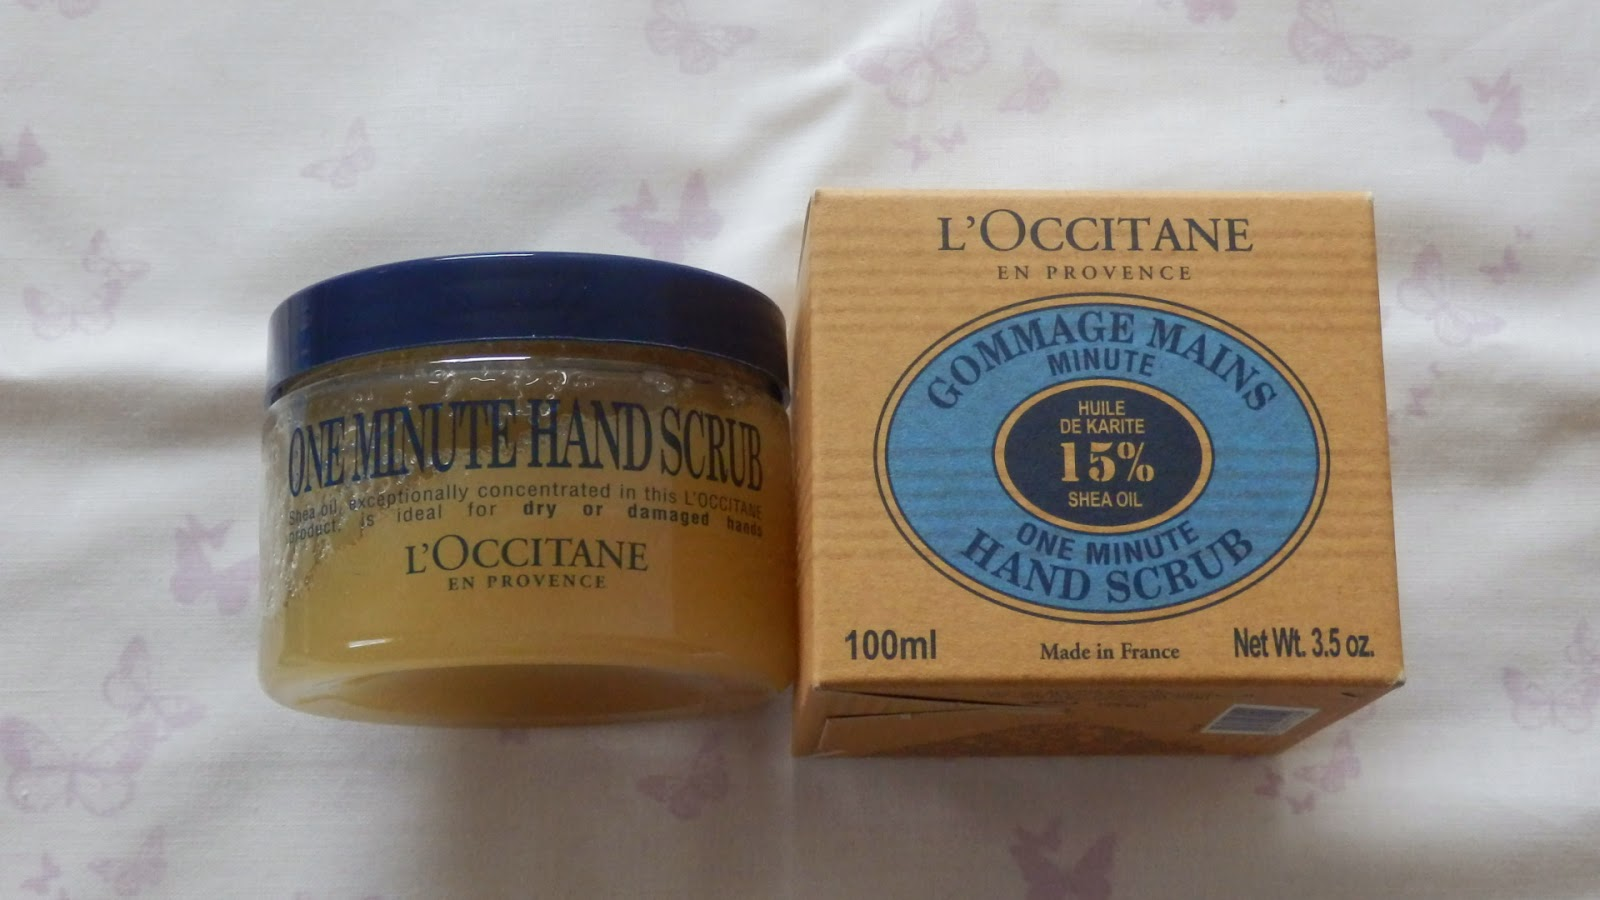 L'Occitane Instyle Shopping Event Haul One Minute Hand Scrub